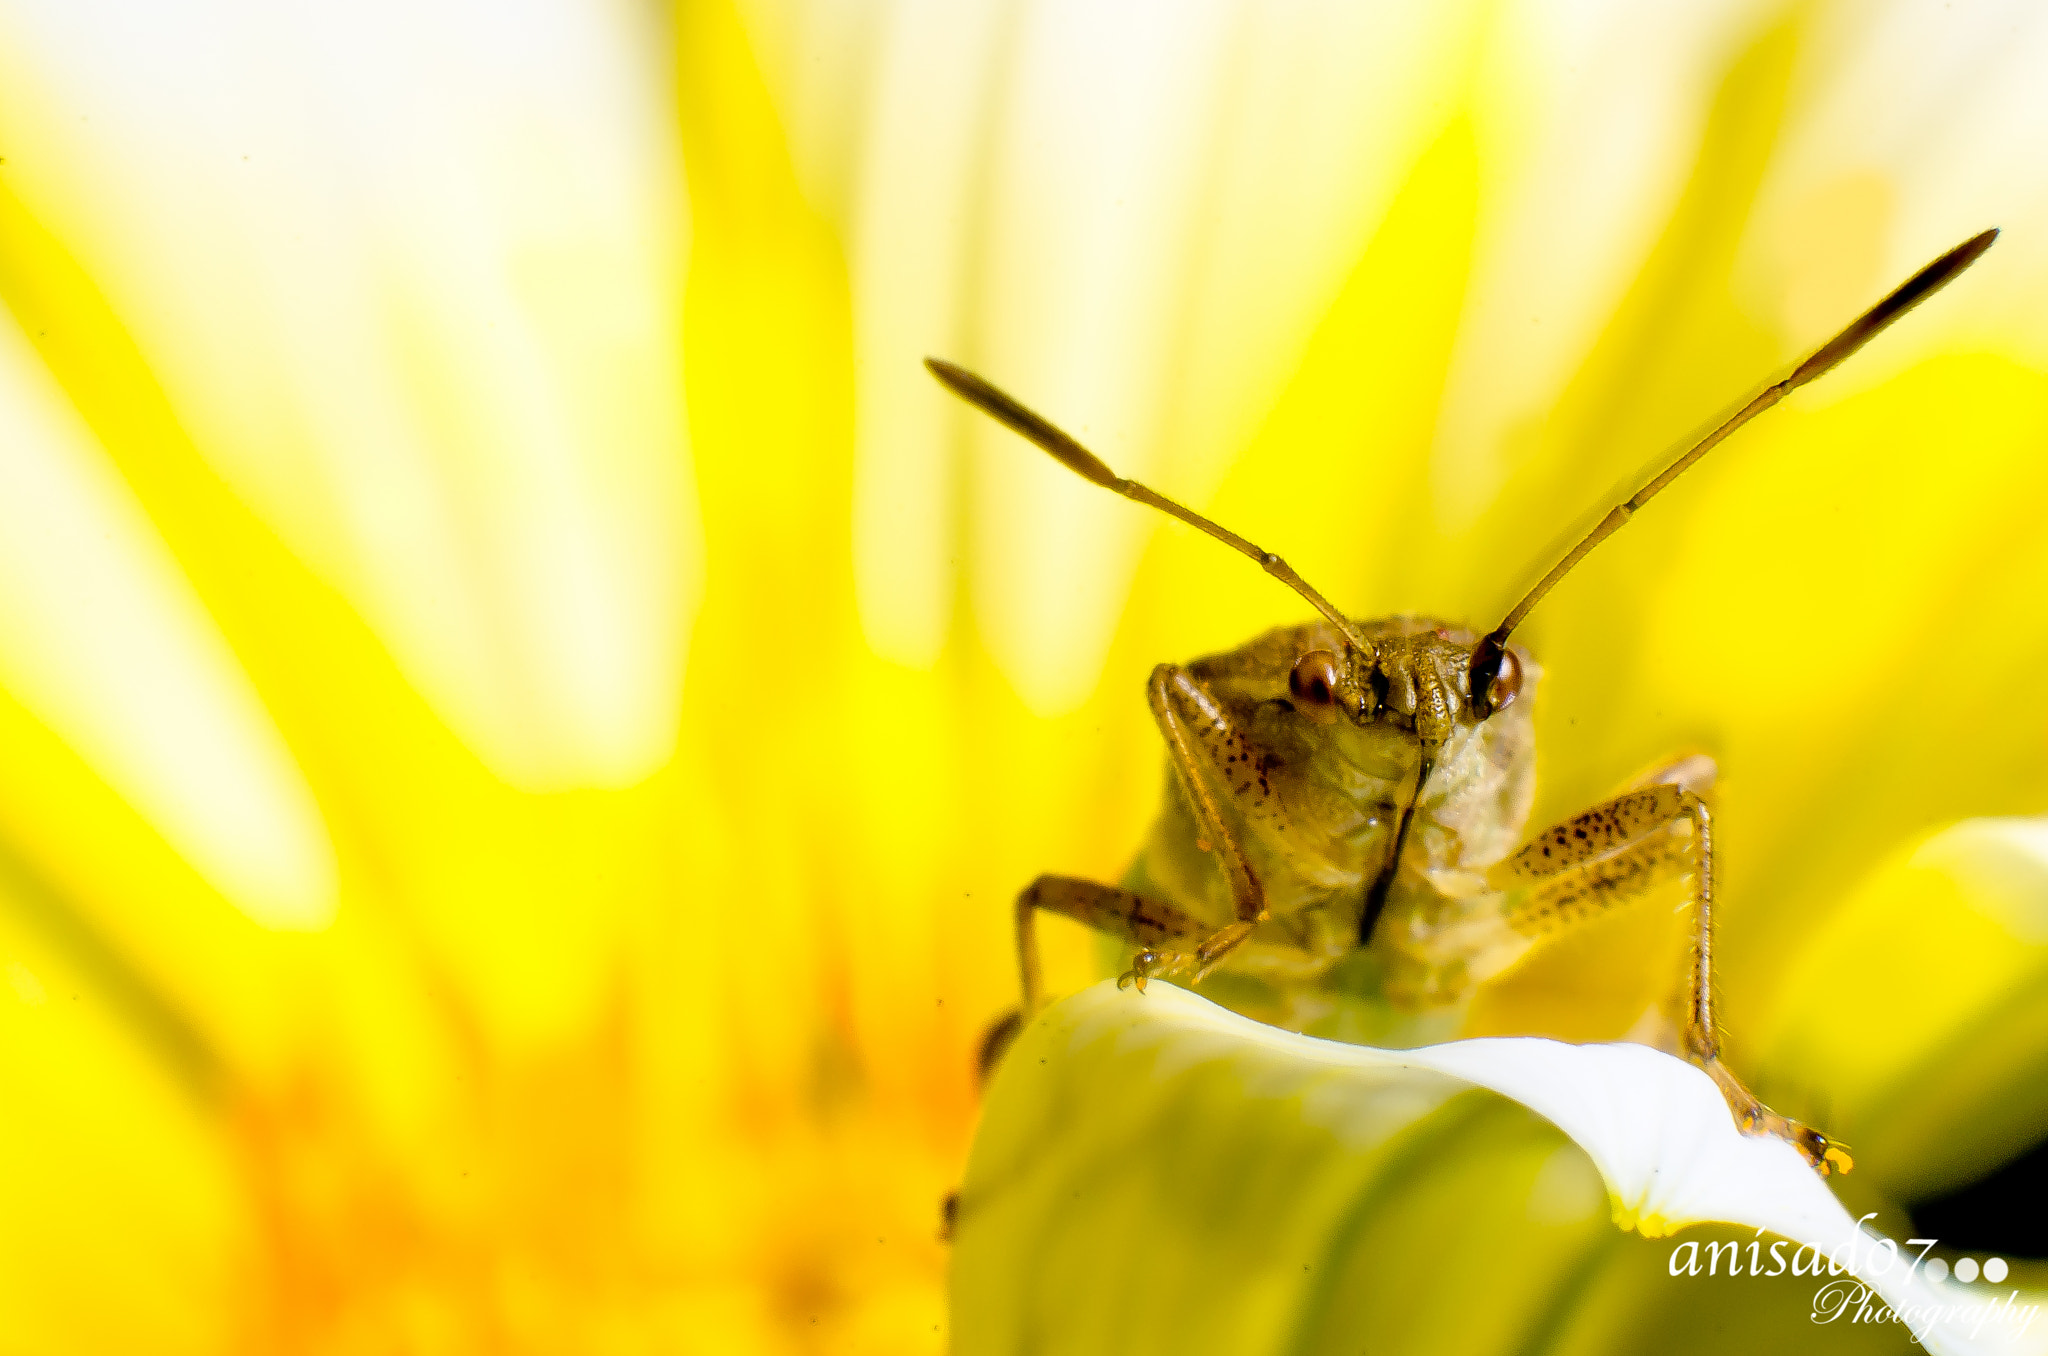 Photograph Insect ANTENNA  by Anish Adhikari on 500px